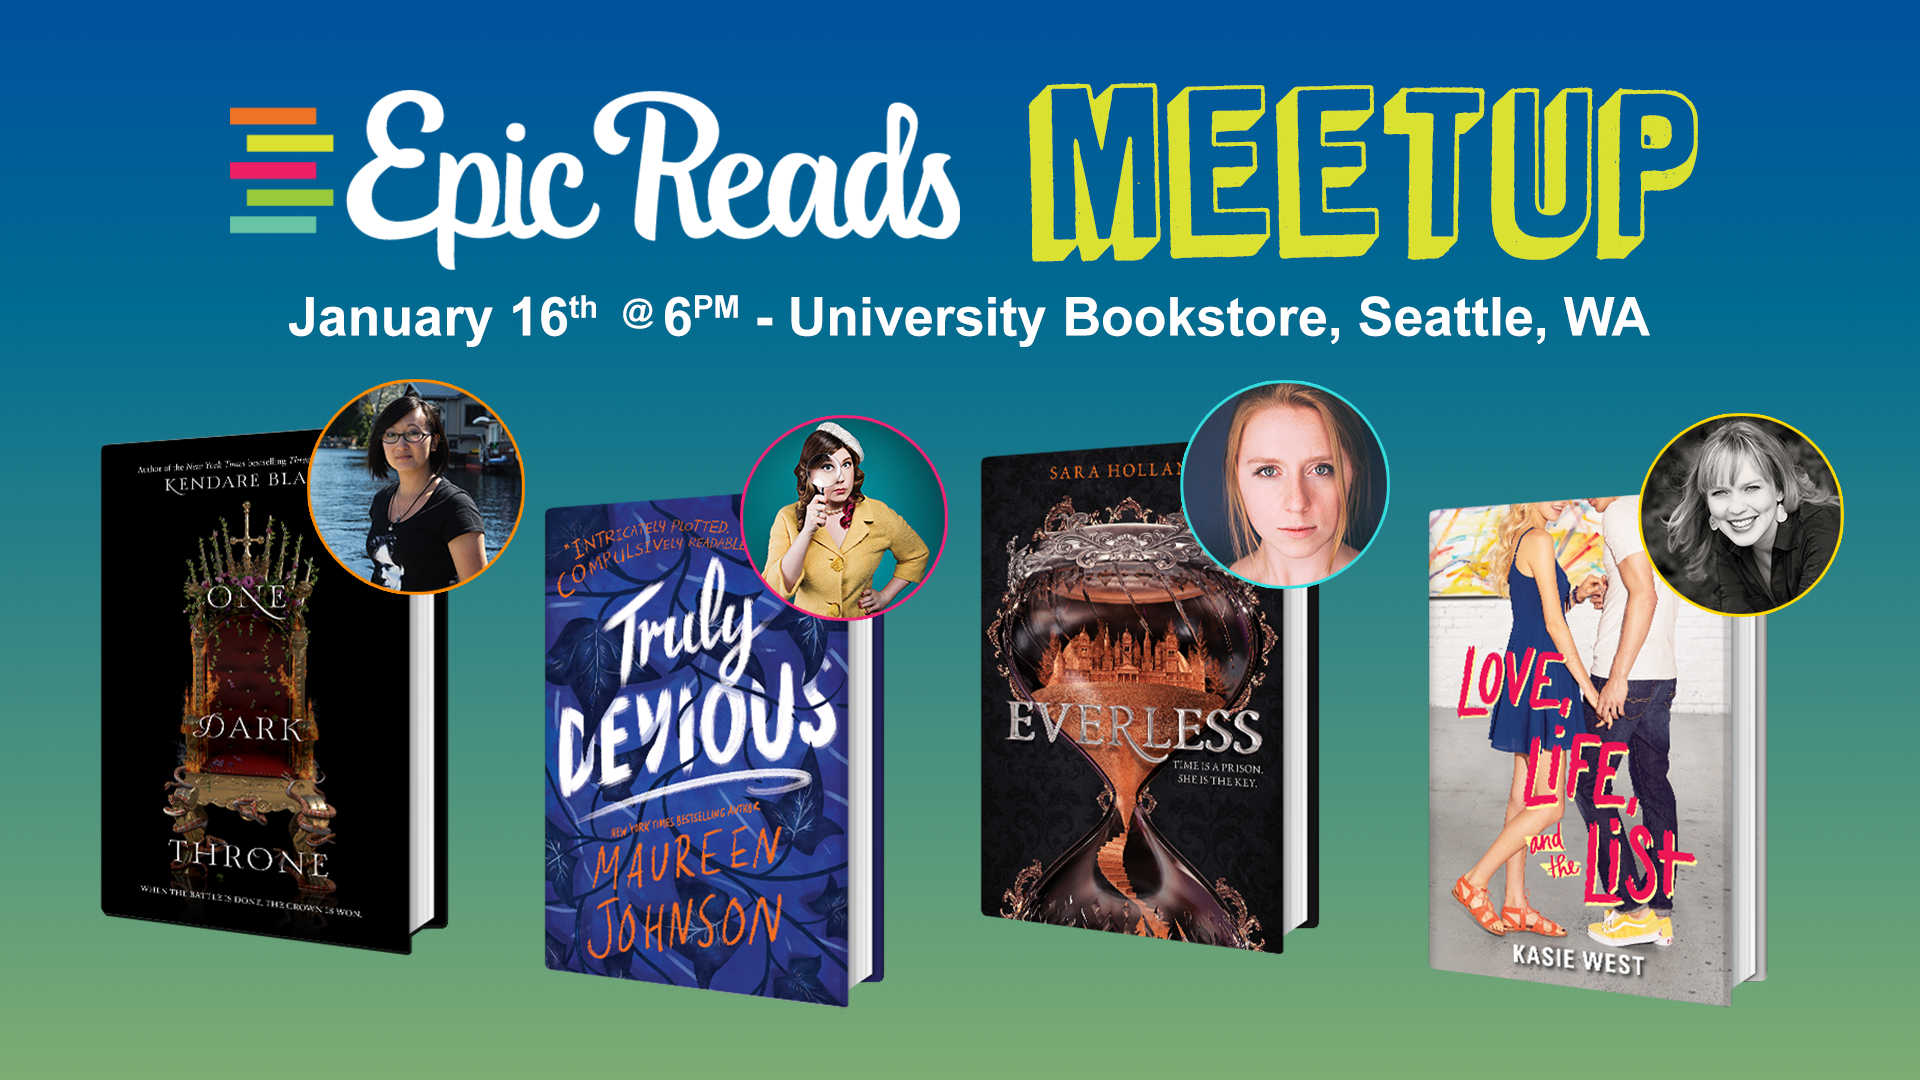 Epic Reads Meetup